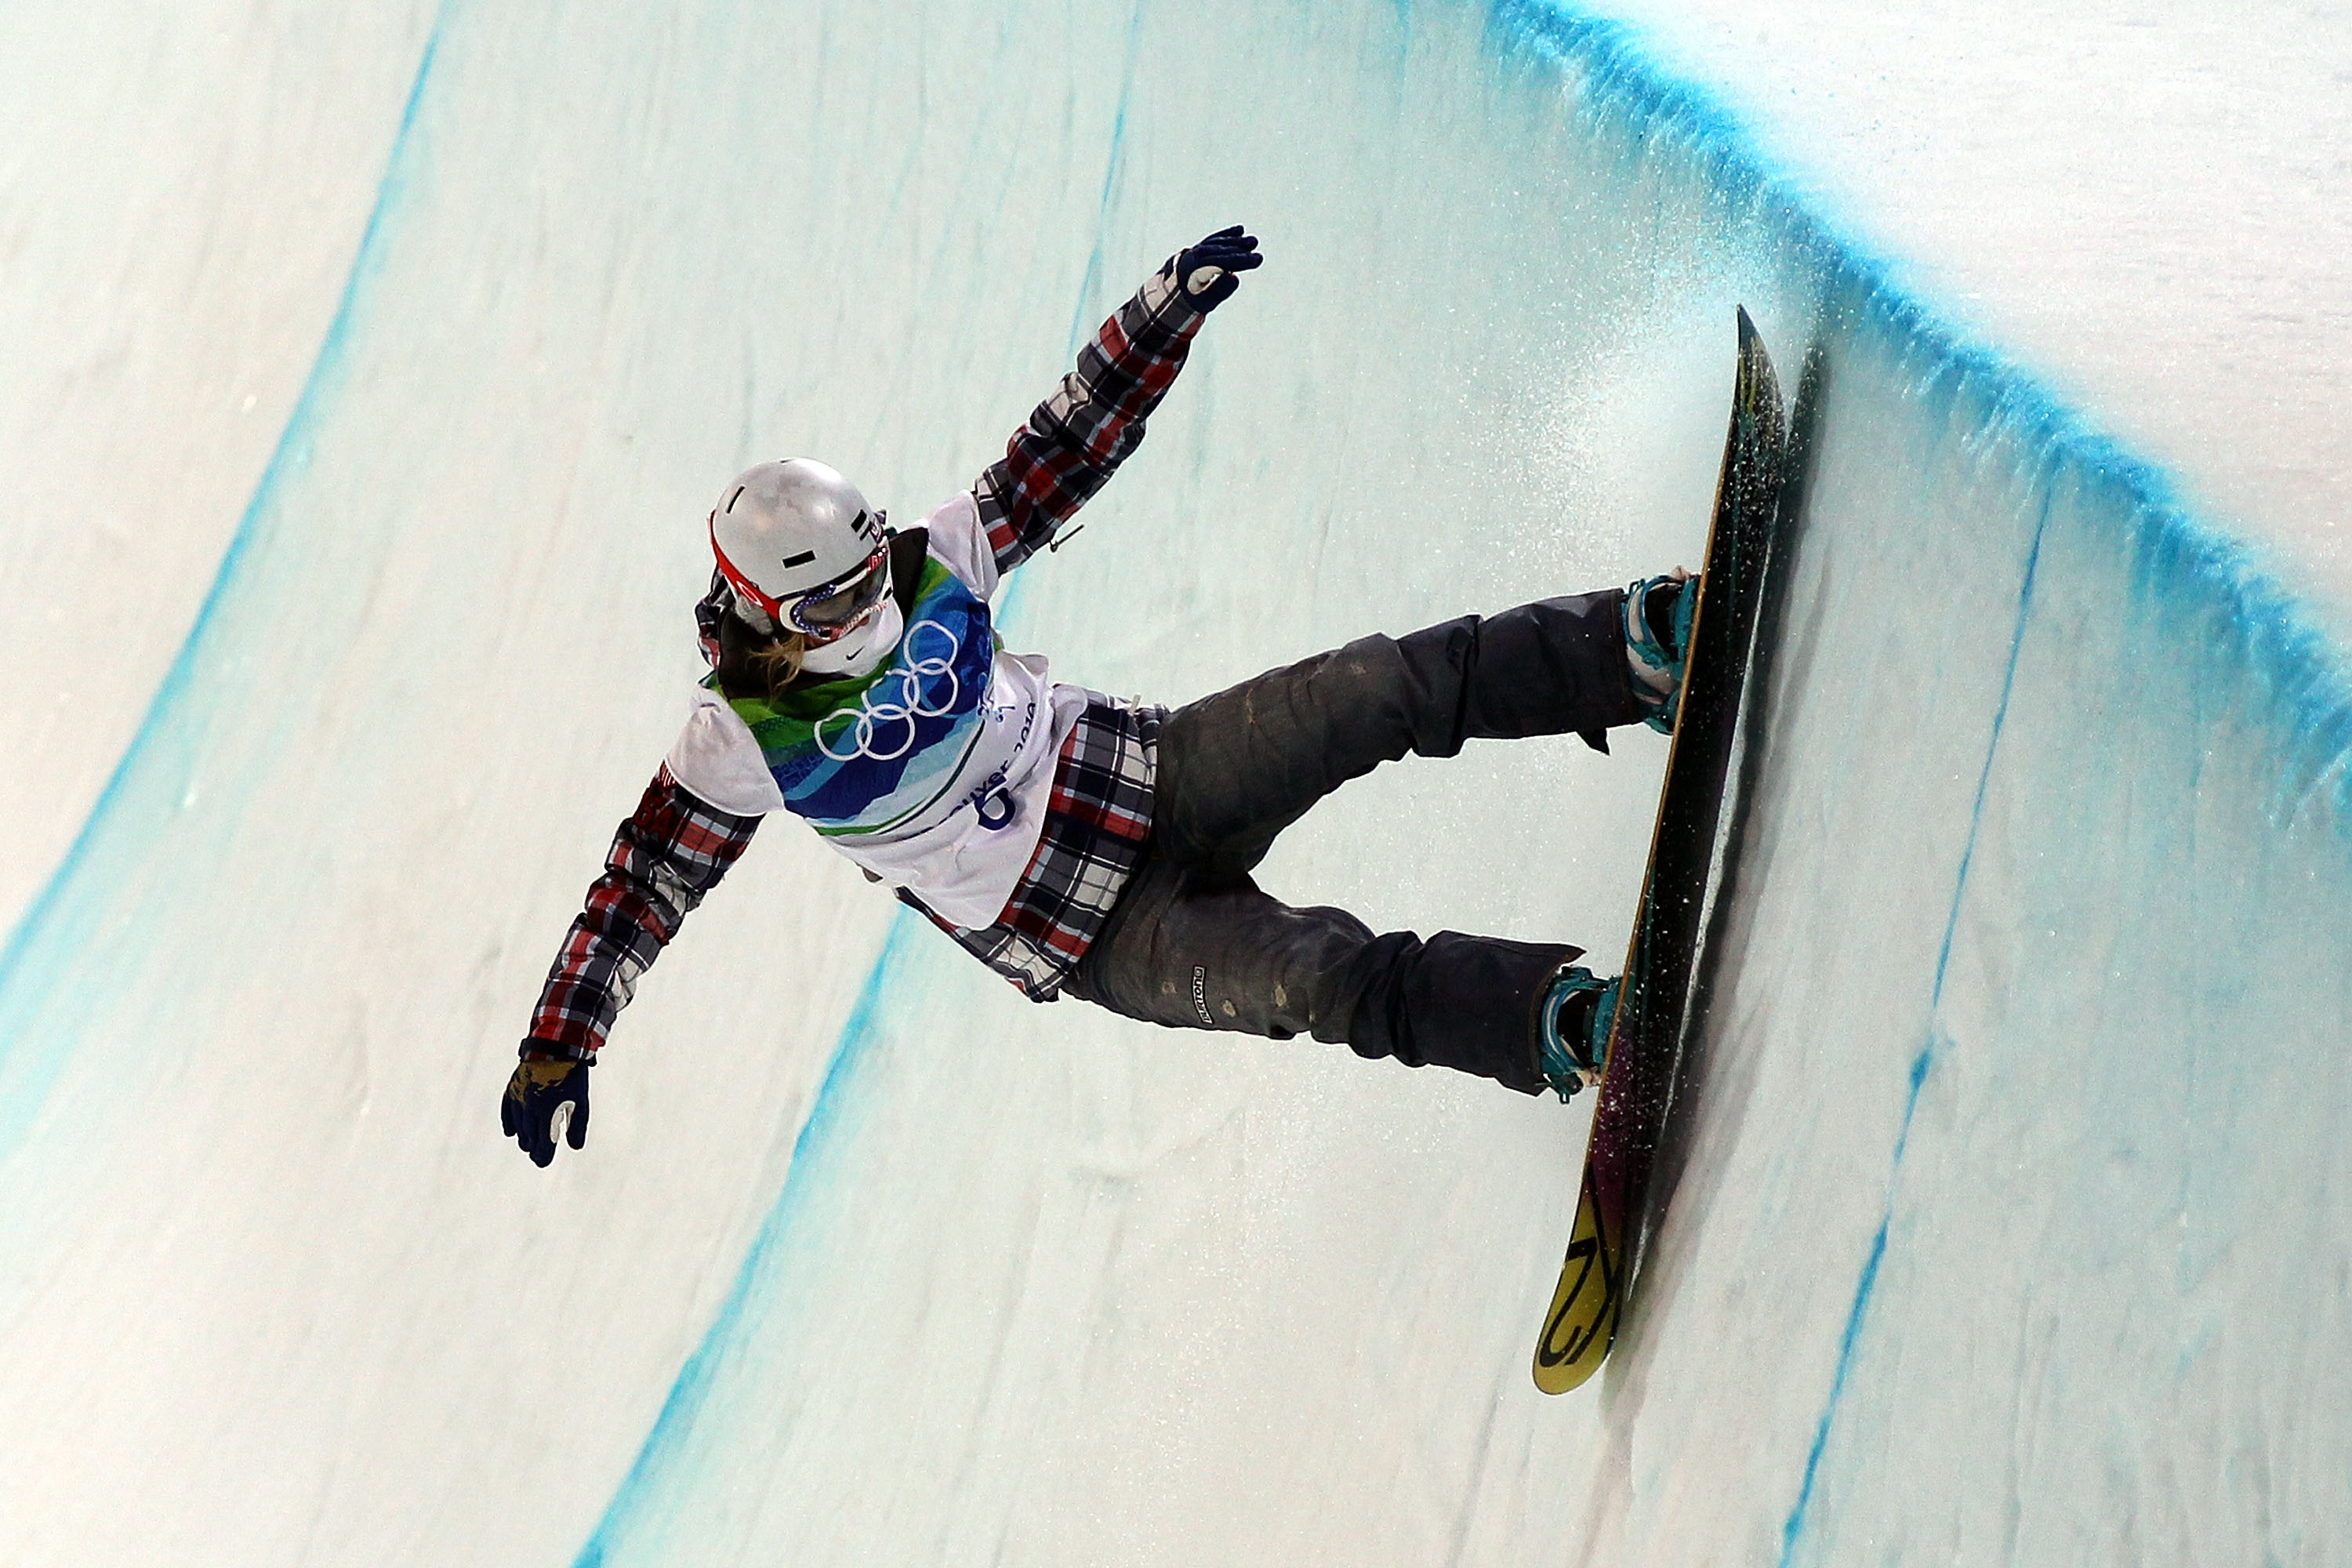 VANCOUVER, BC - FEBRUARY 18:  Gretchen Bleiler of the United States competes in the women's snowboard halfpipe final on day seven of the Vancouver 2010 Winter Olympics at Cypress Snowboard & Ski-Cross Stadium on February 18, 2010 in Vancouver, Canada.  (P